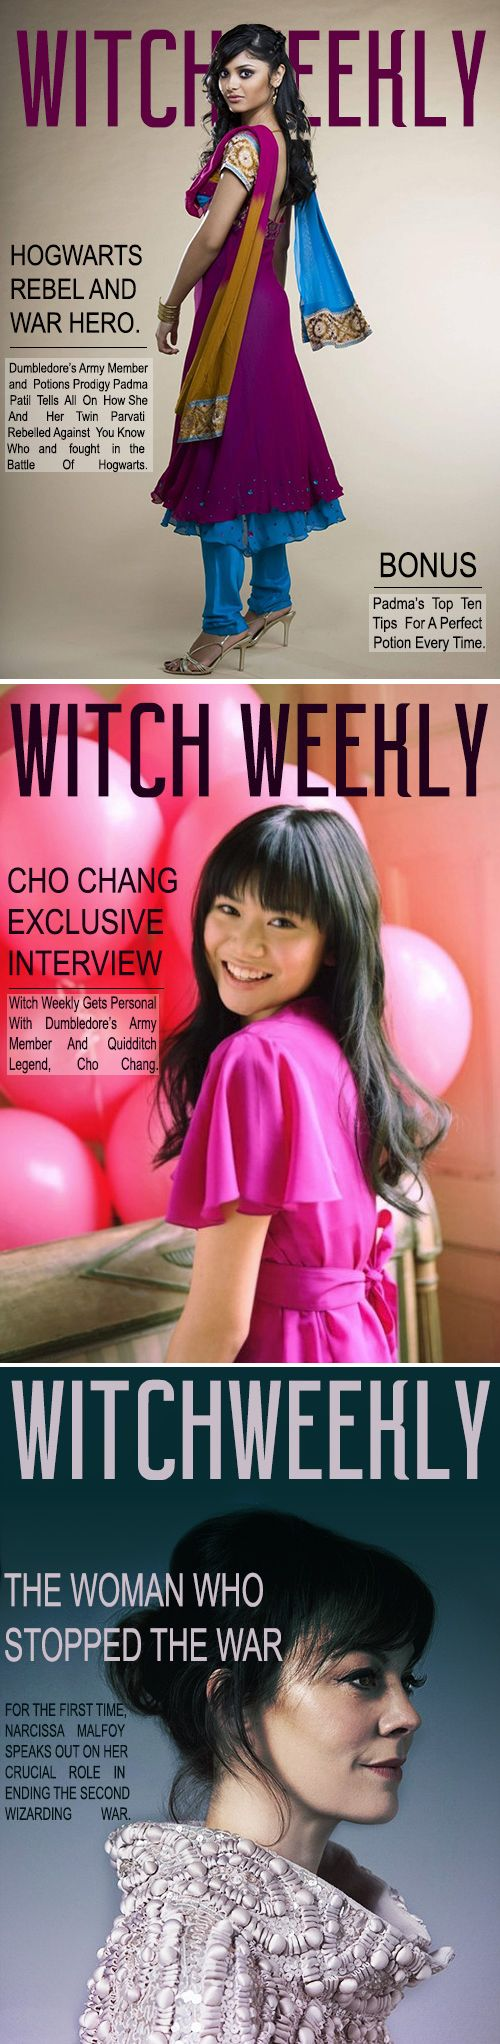 Witch Weekly Covers #hp